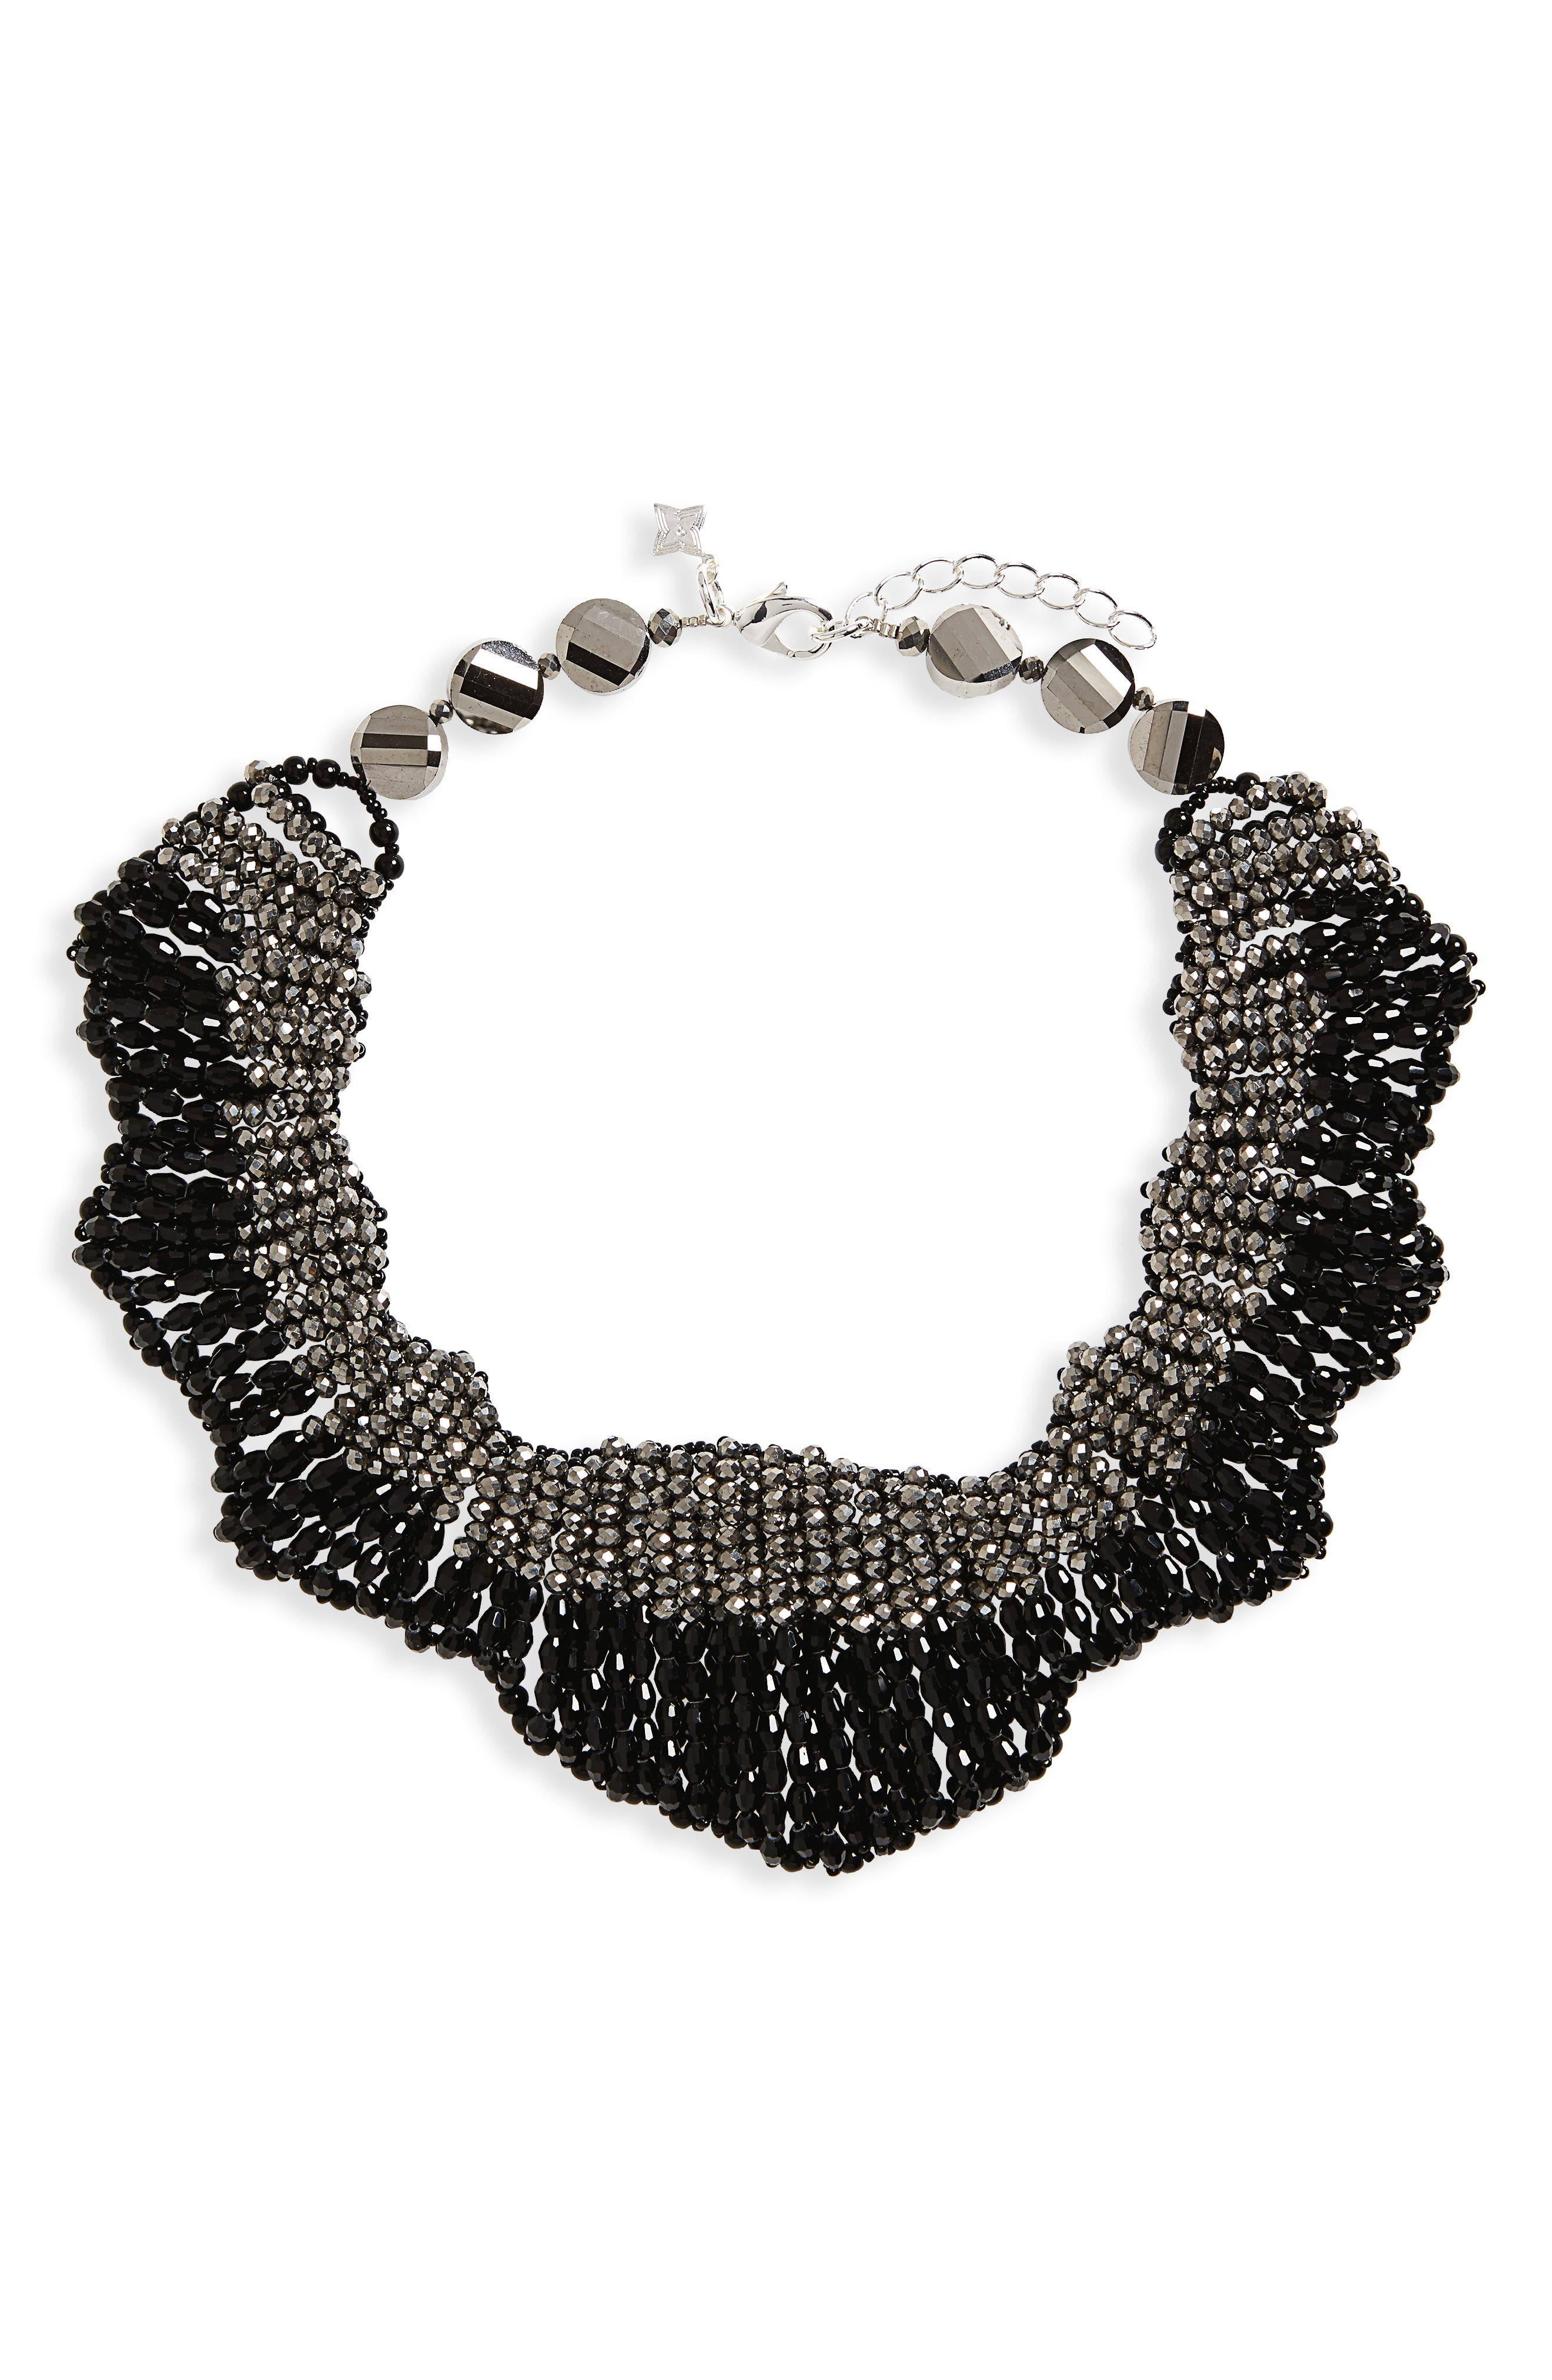 Beaded Statement Collar Necklace,                         Main,                         color, Black